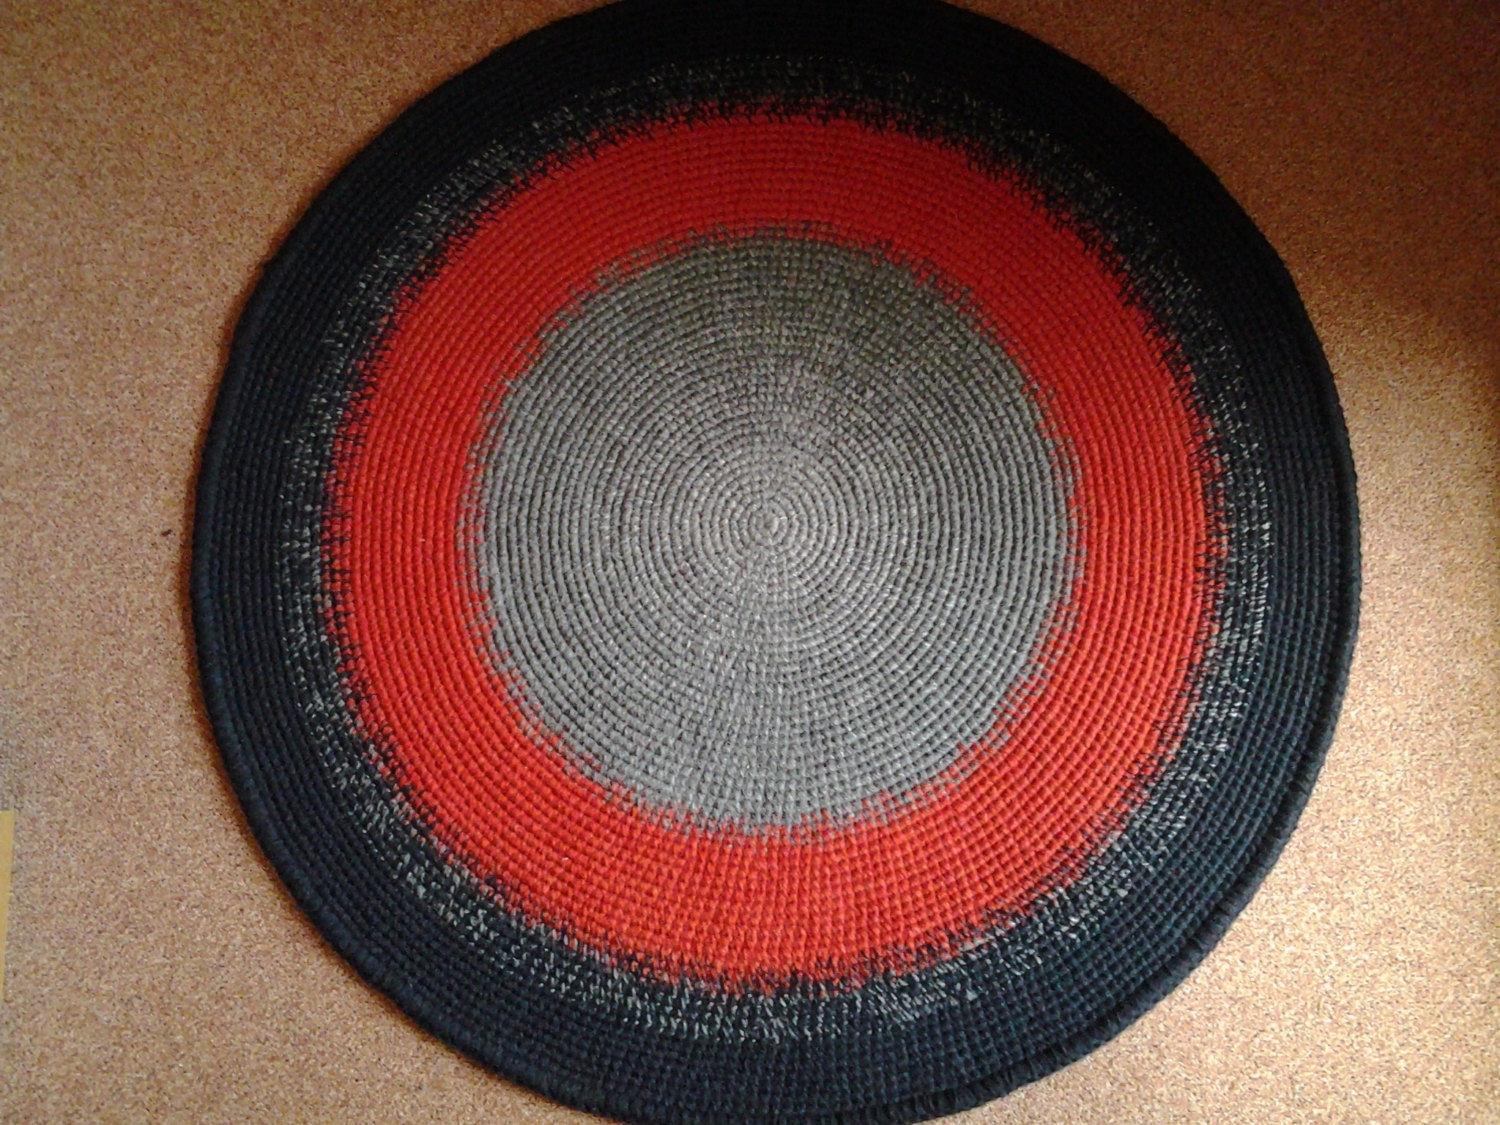 Round Rug Etsy Regarding Circular Wool Rugs (Image 10 of 15)